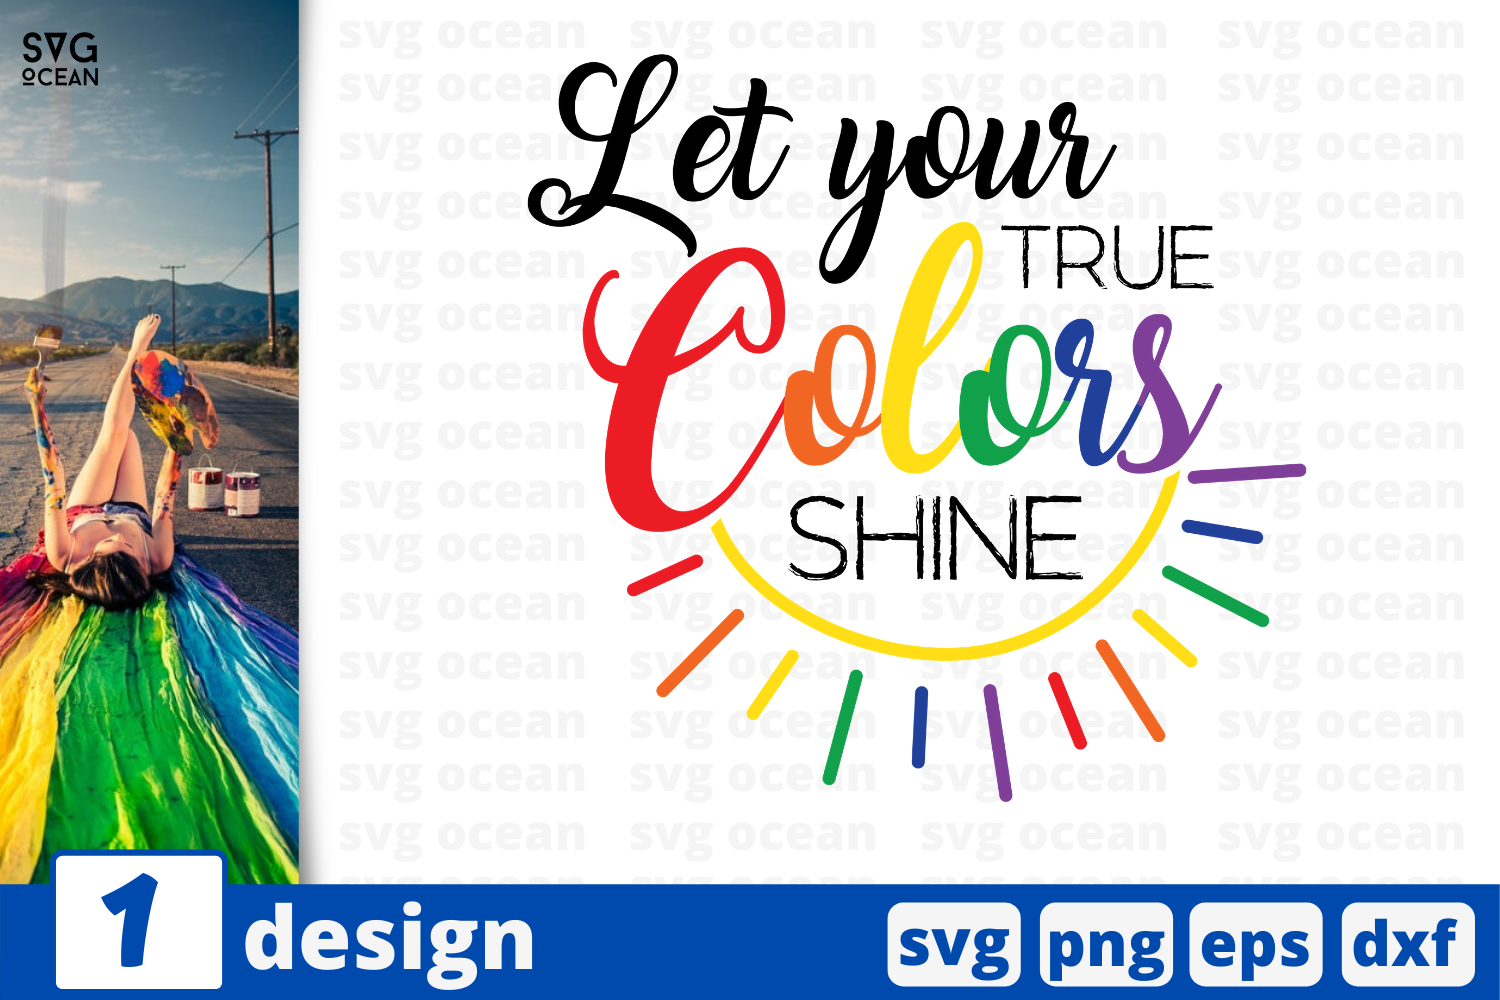 Download Free Let Your True Colors Shine Graphic By Svgocean Creative Fabrica for Cricut Explore, Silhouette and other cutting machines.